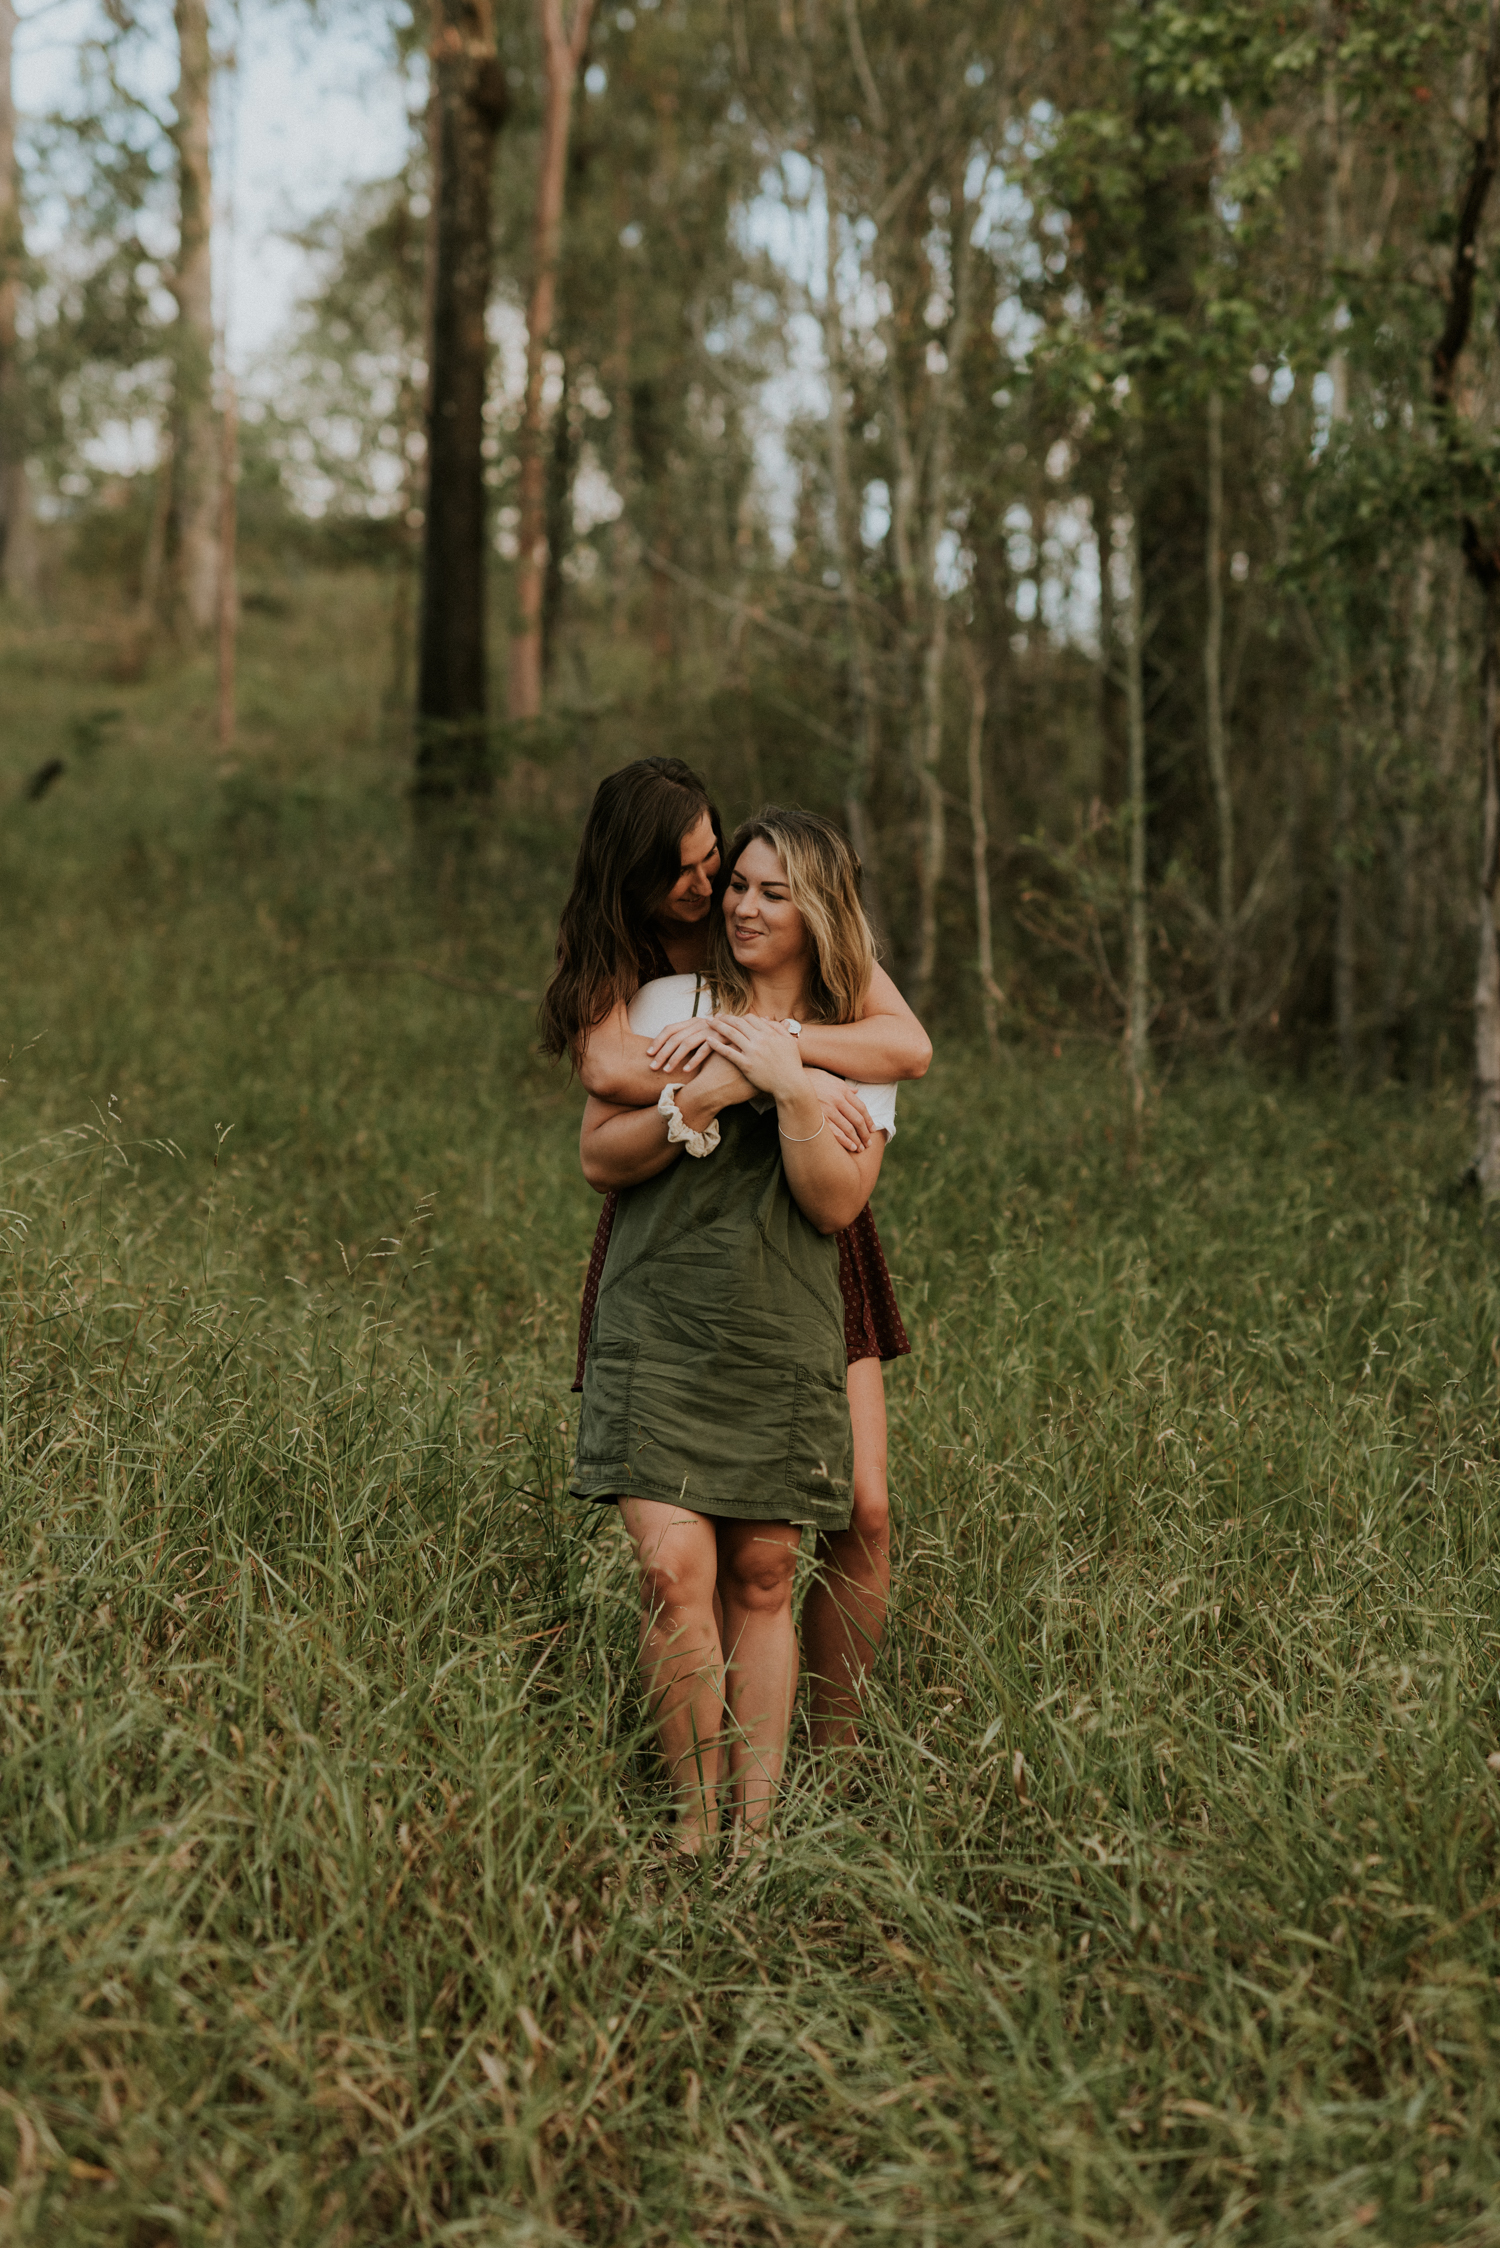 Brisbane Same-Sex Wedding Photographer | Engagement-Elopement Photography-29.jpg